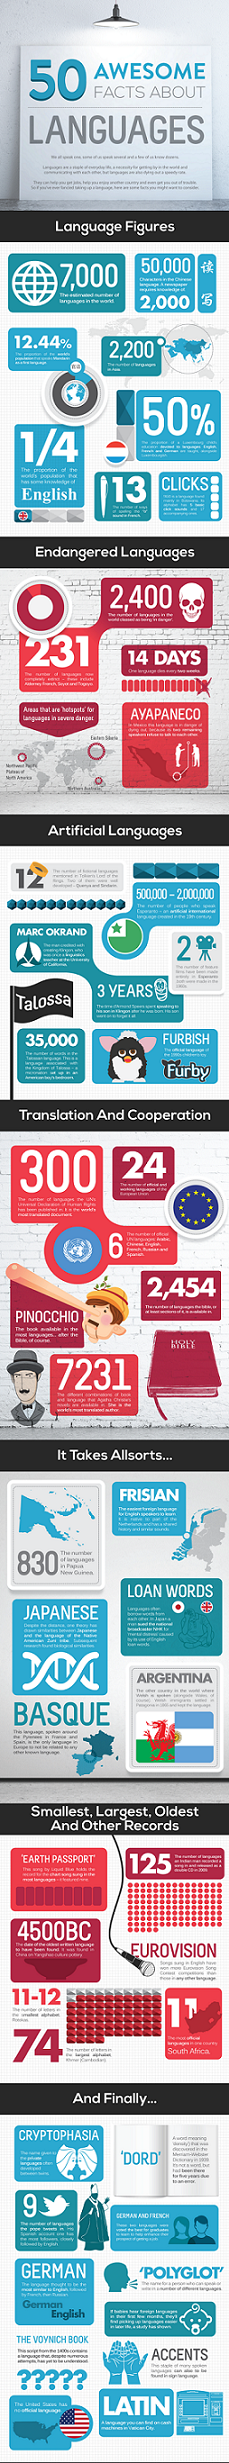 infographic-50 Awesome Facts About Languages